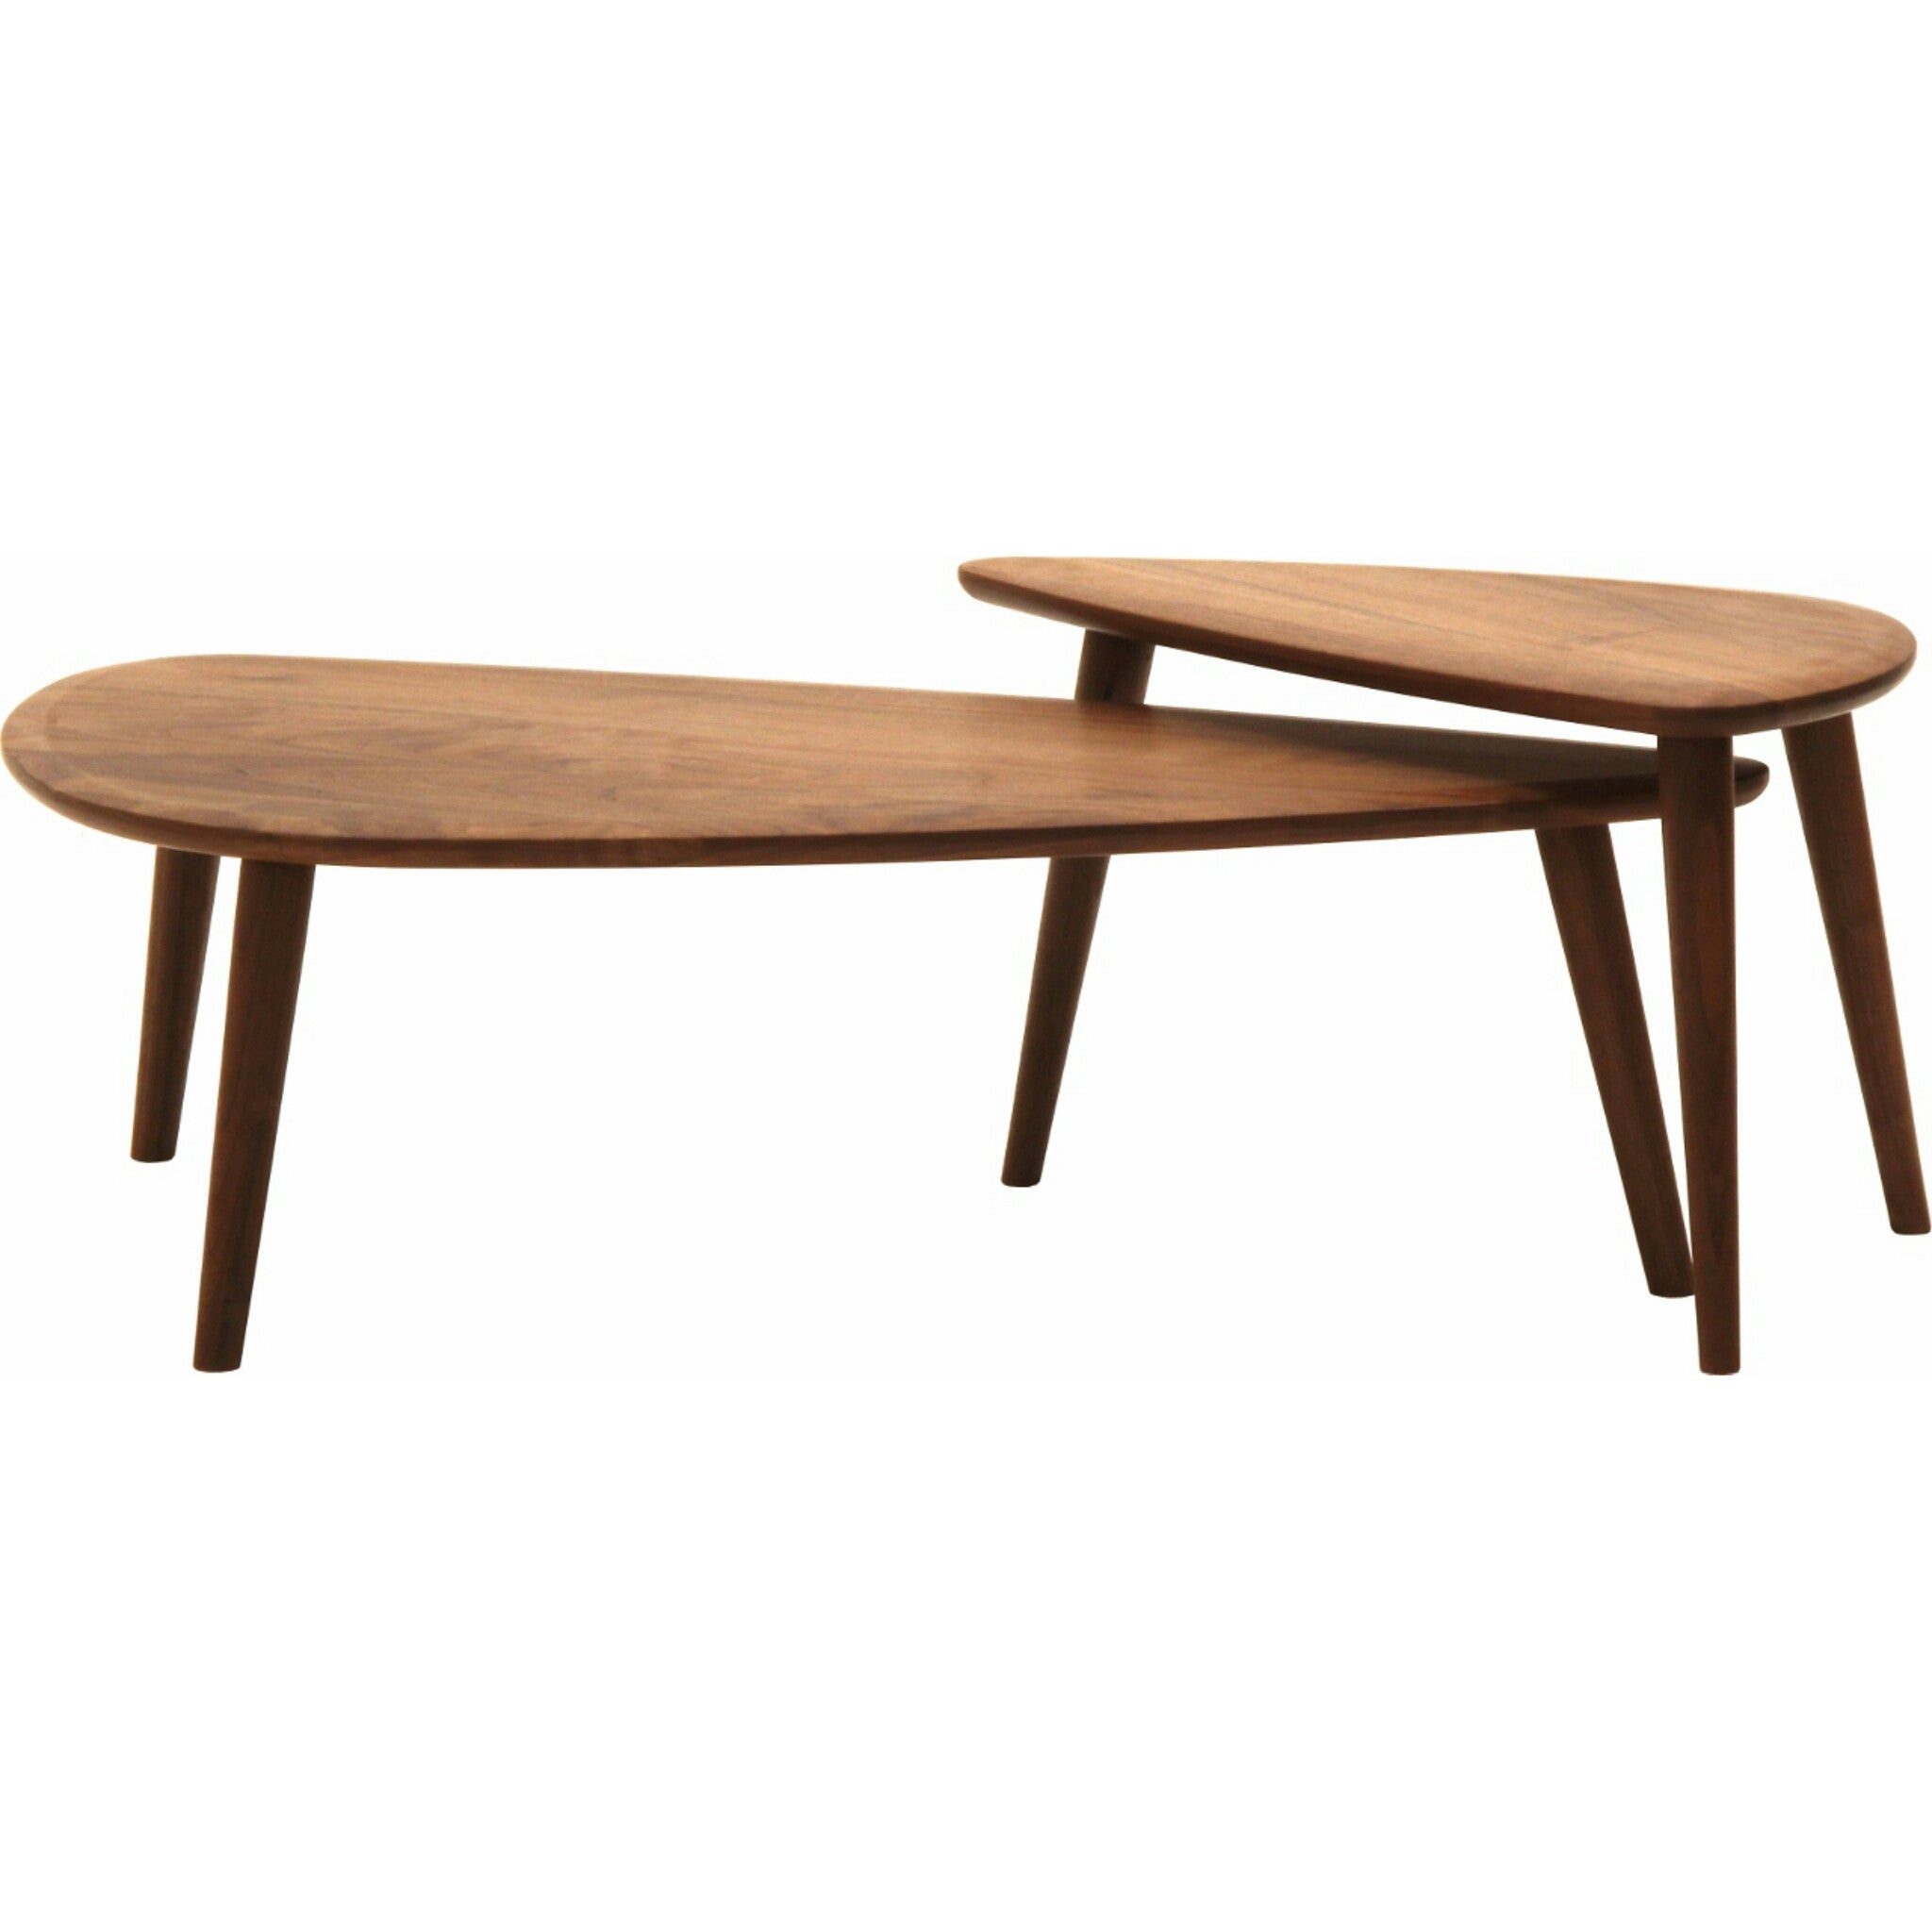 Nagano Interior - SOLID Living Table LT017 - Coffee Table